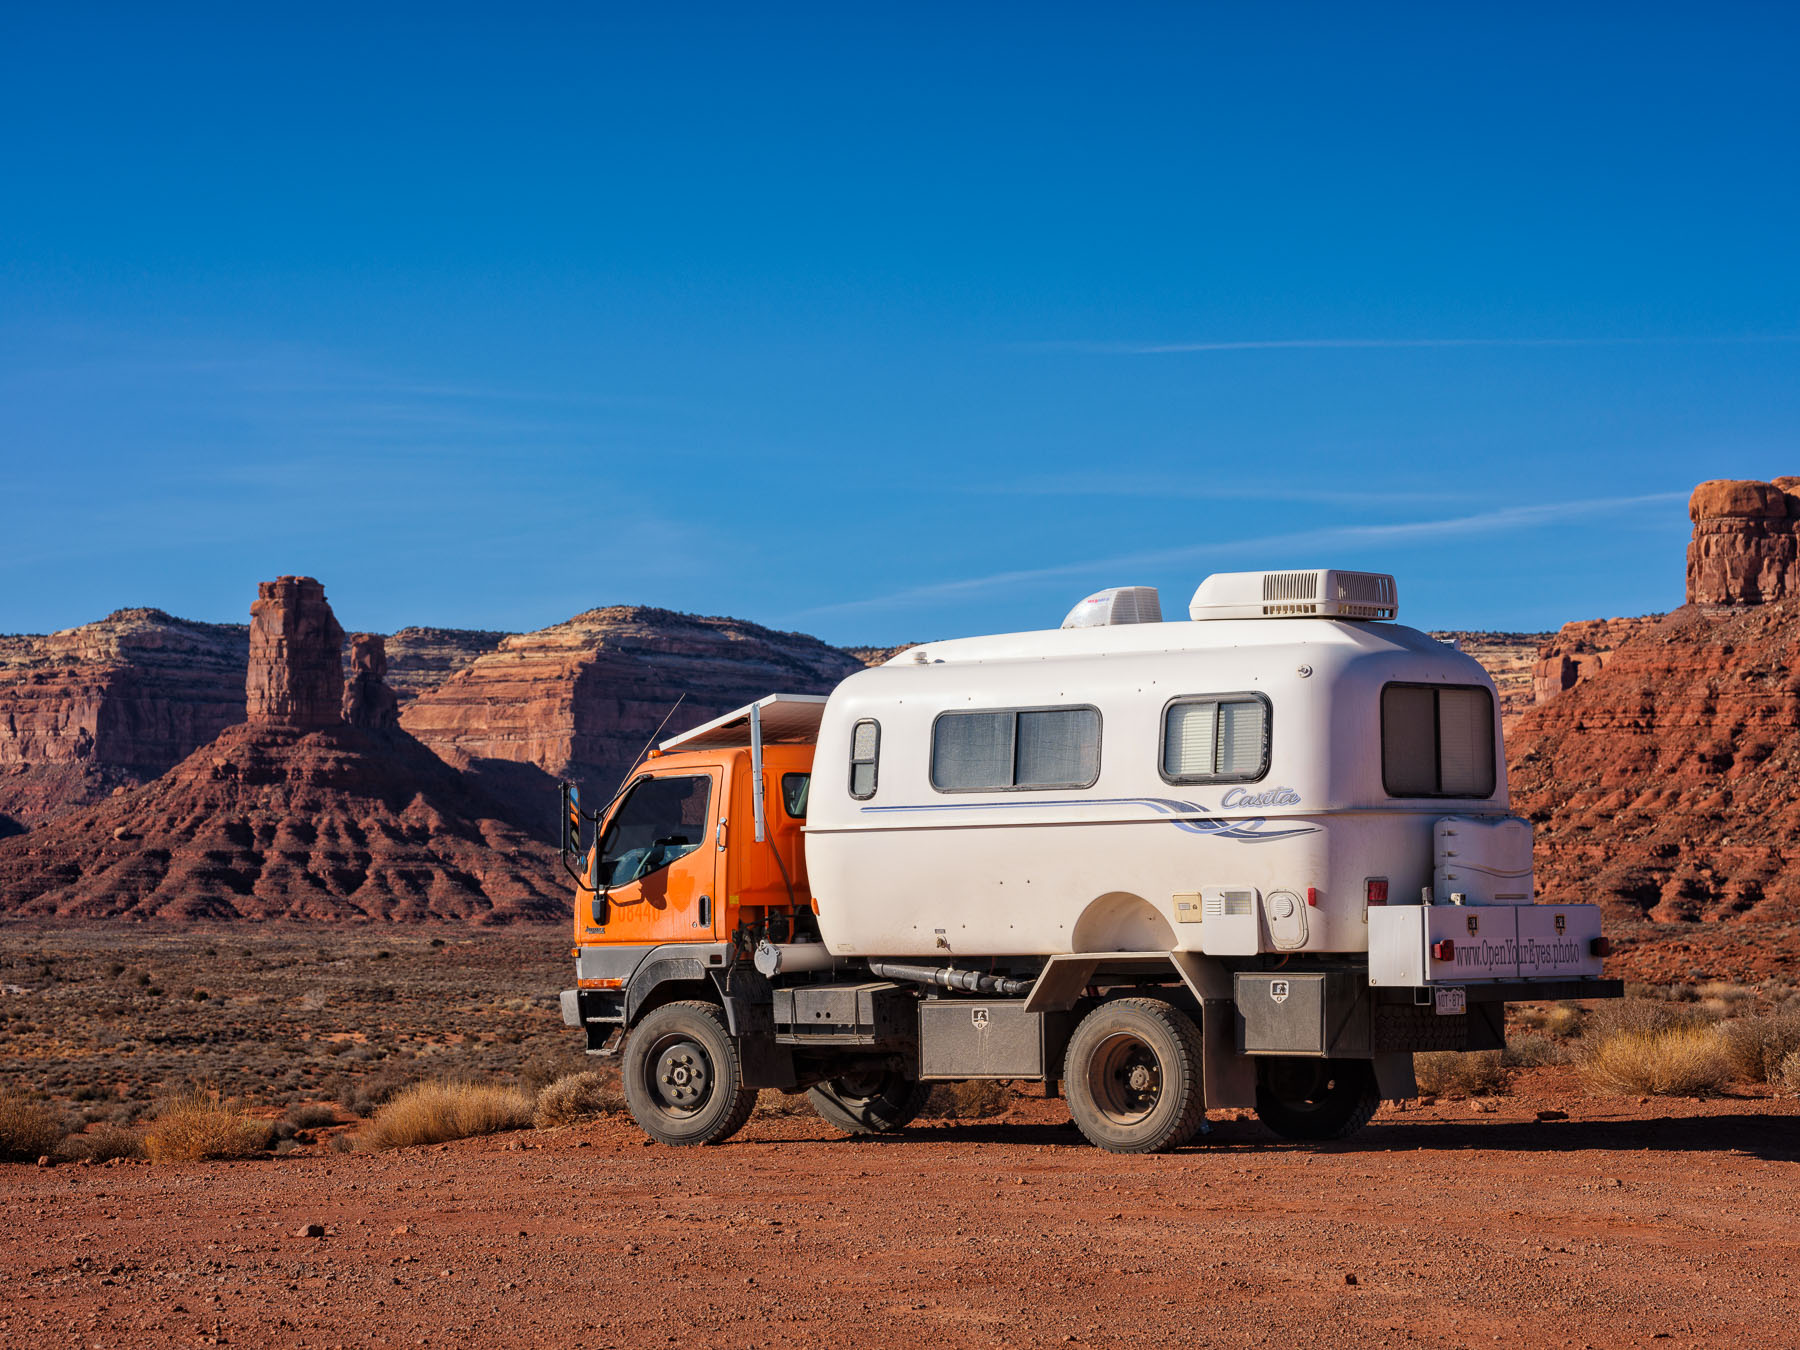 The Cassita Fuso in Arches National Park